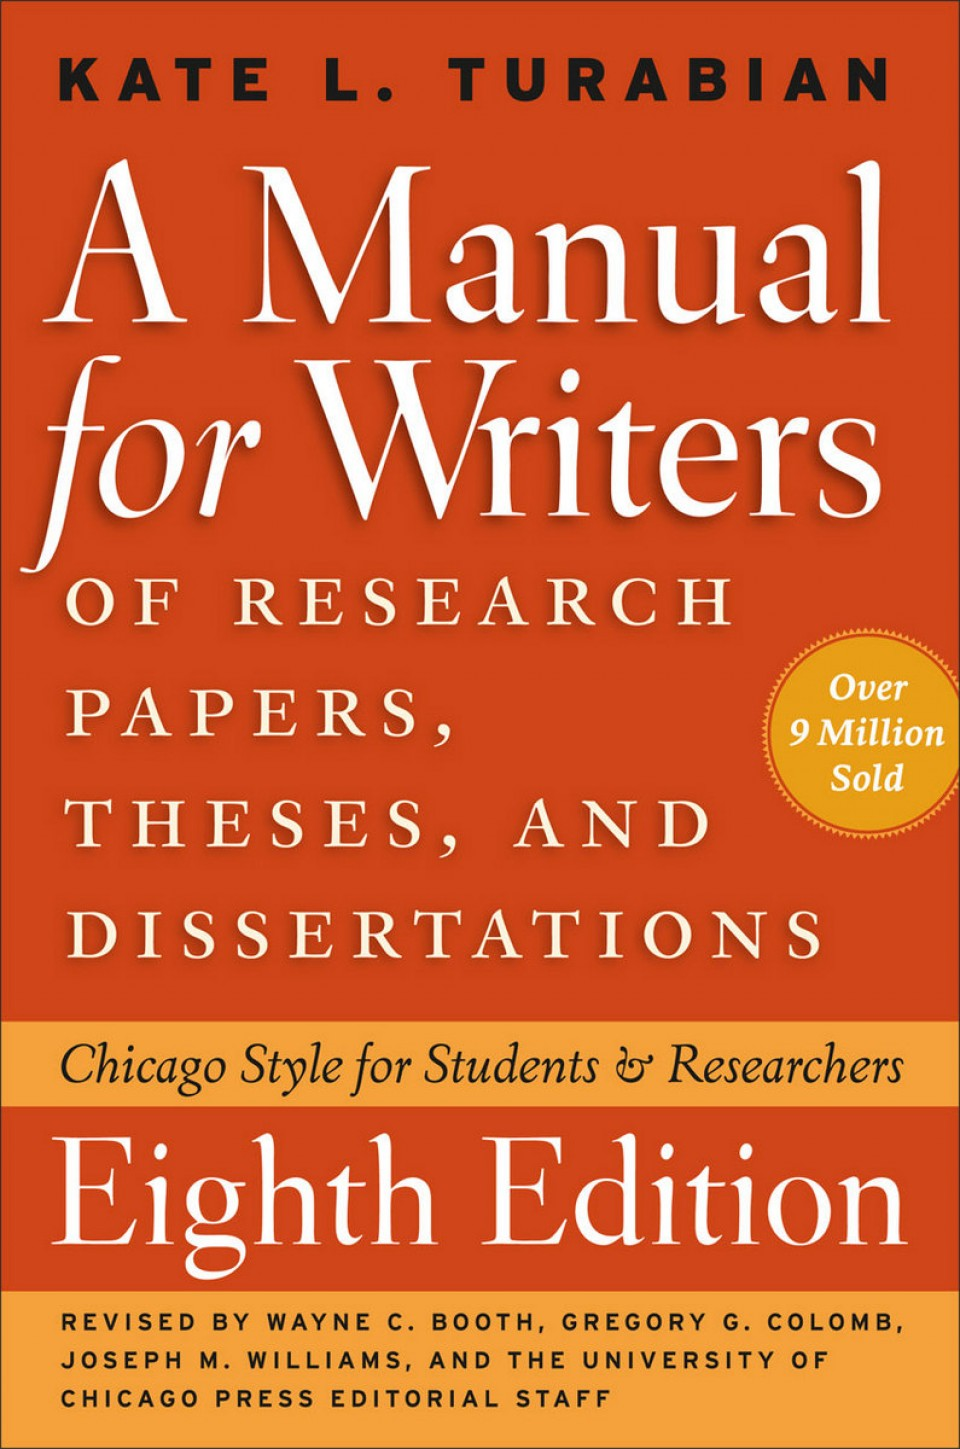 002 Frontcover Manual For Writers Of Researchs Theses And Dissertations Sensational A Research Papers Ed. 8 8th Edition Ninth Pdf 960